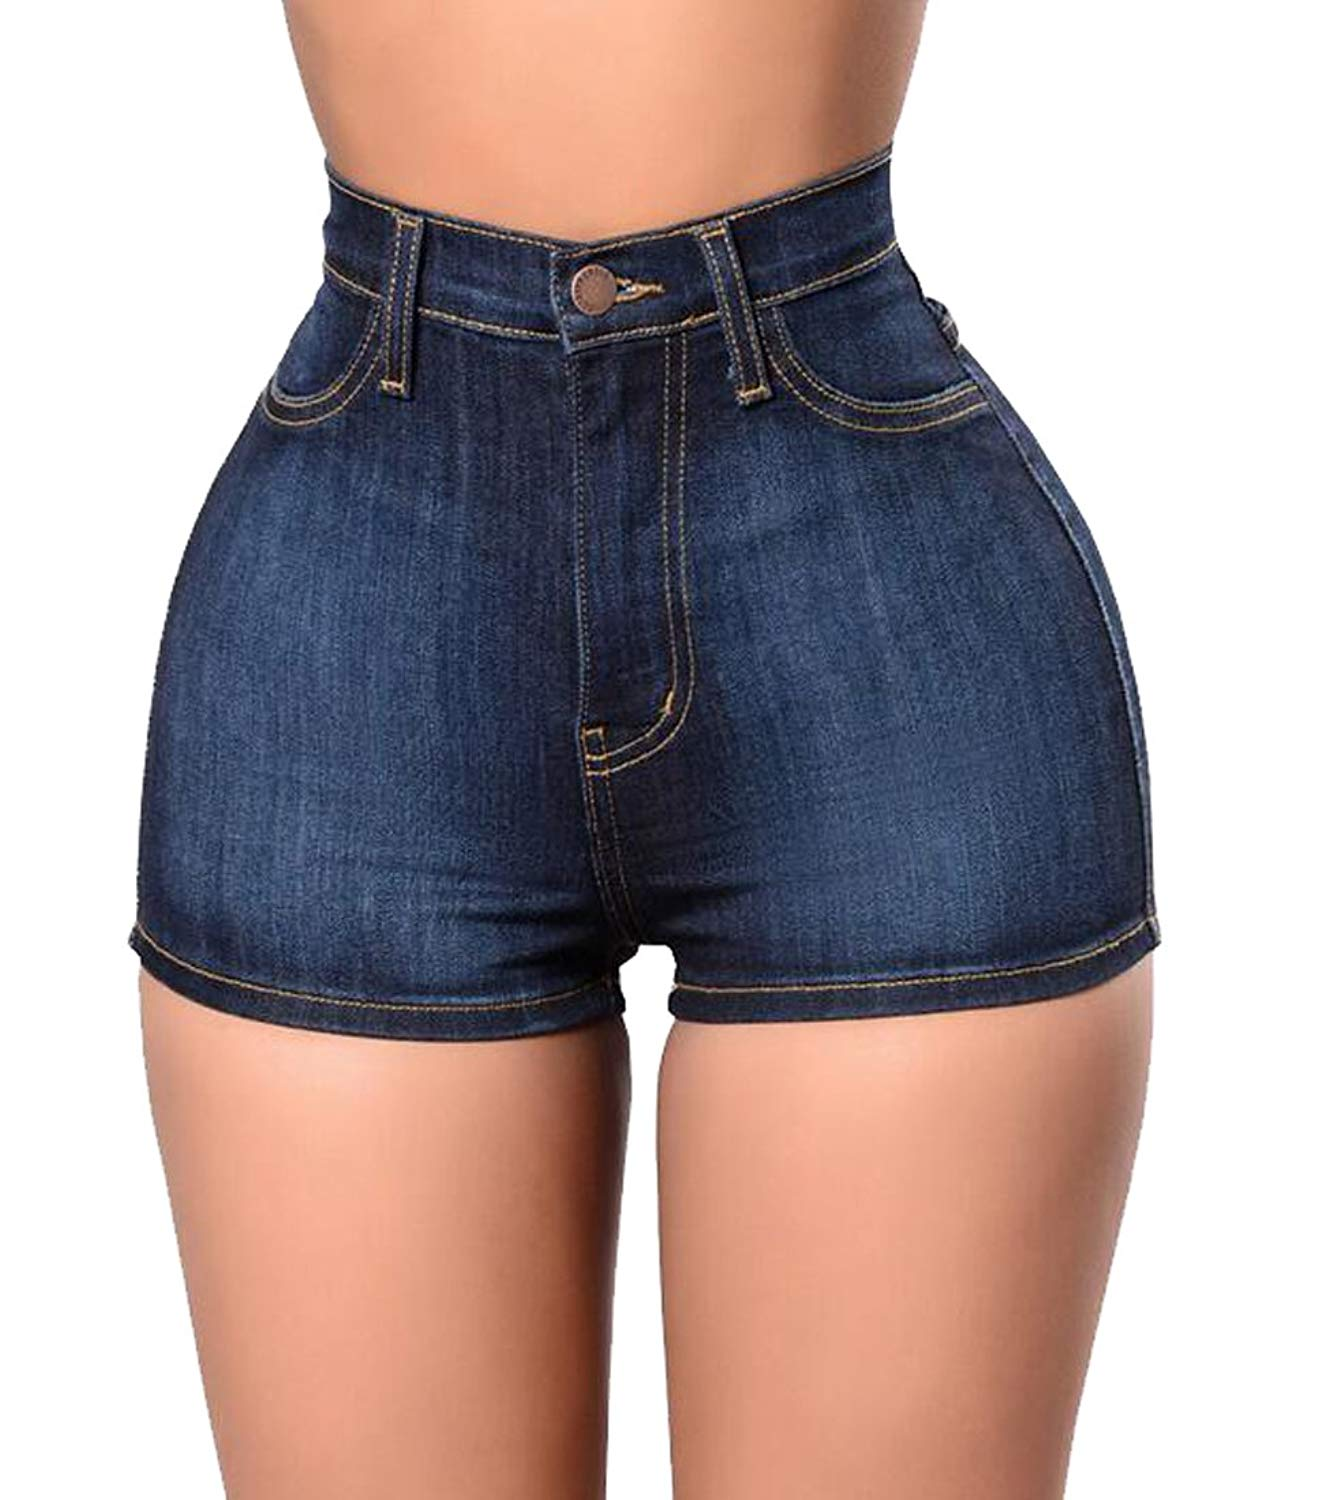 02b75782e0 Get Quotations · Jofemuho Womens Casual Stretchy Skinny High Waisted Thong  Denim Shorts Jeans Shorts